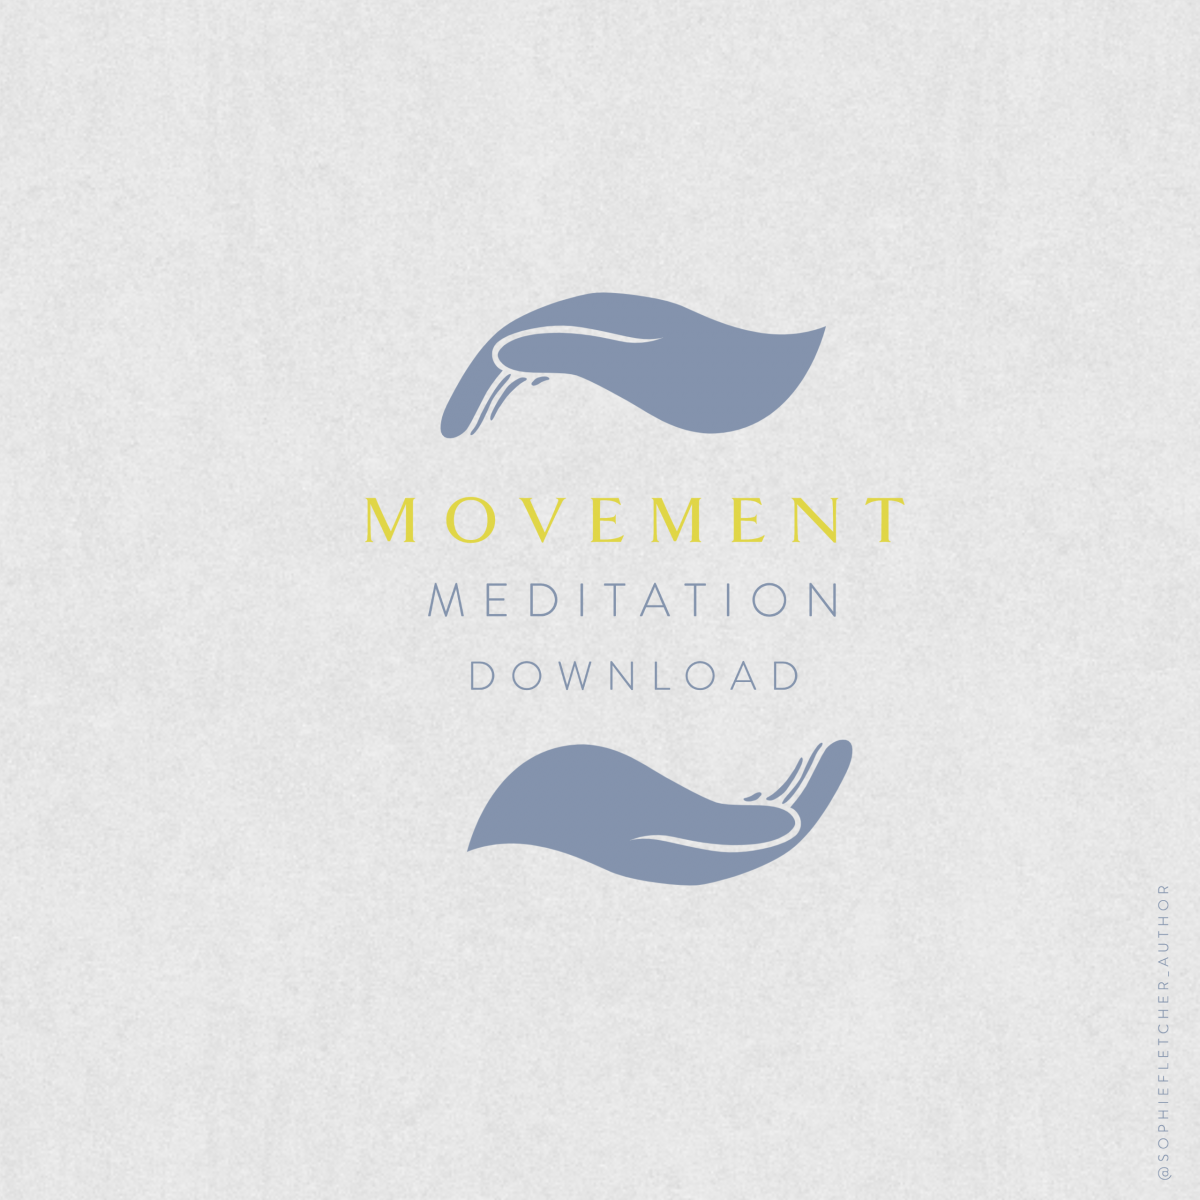 Movement Meditation